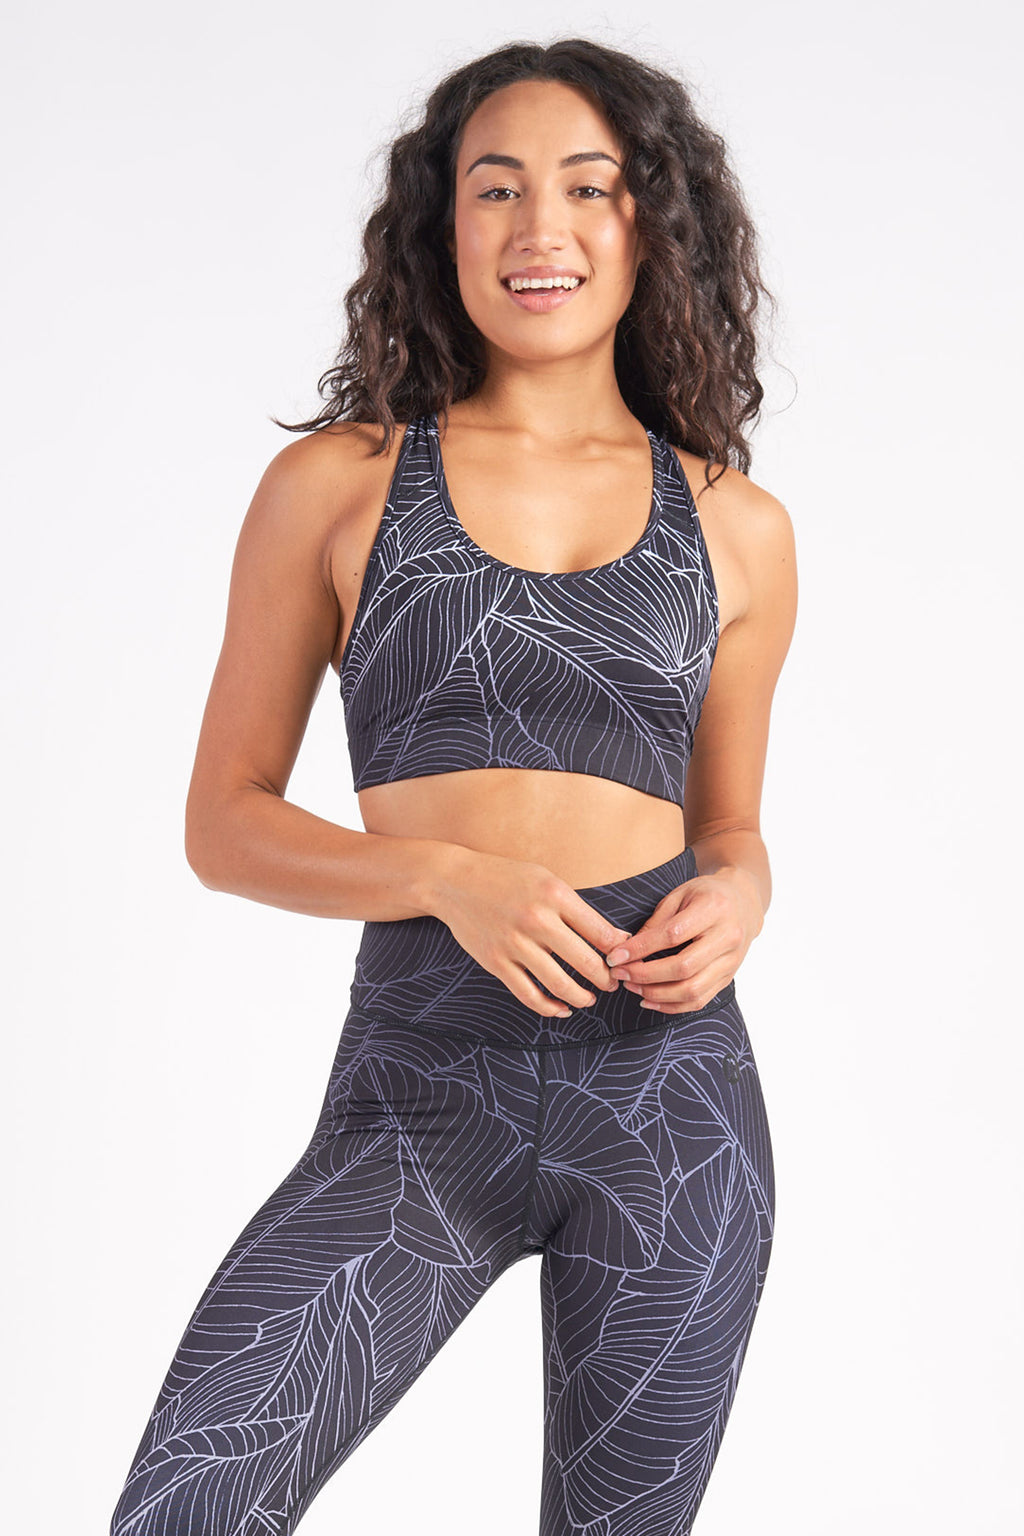 racerback-sports-crop-paradise-small-front.